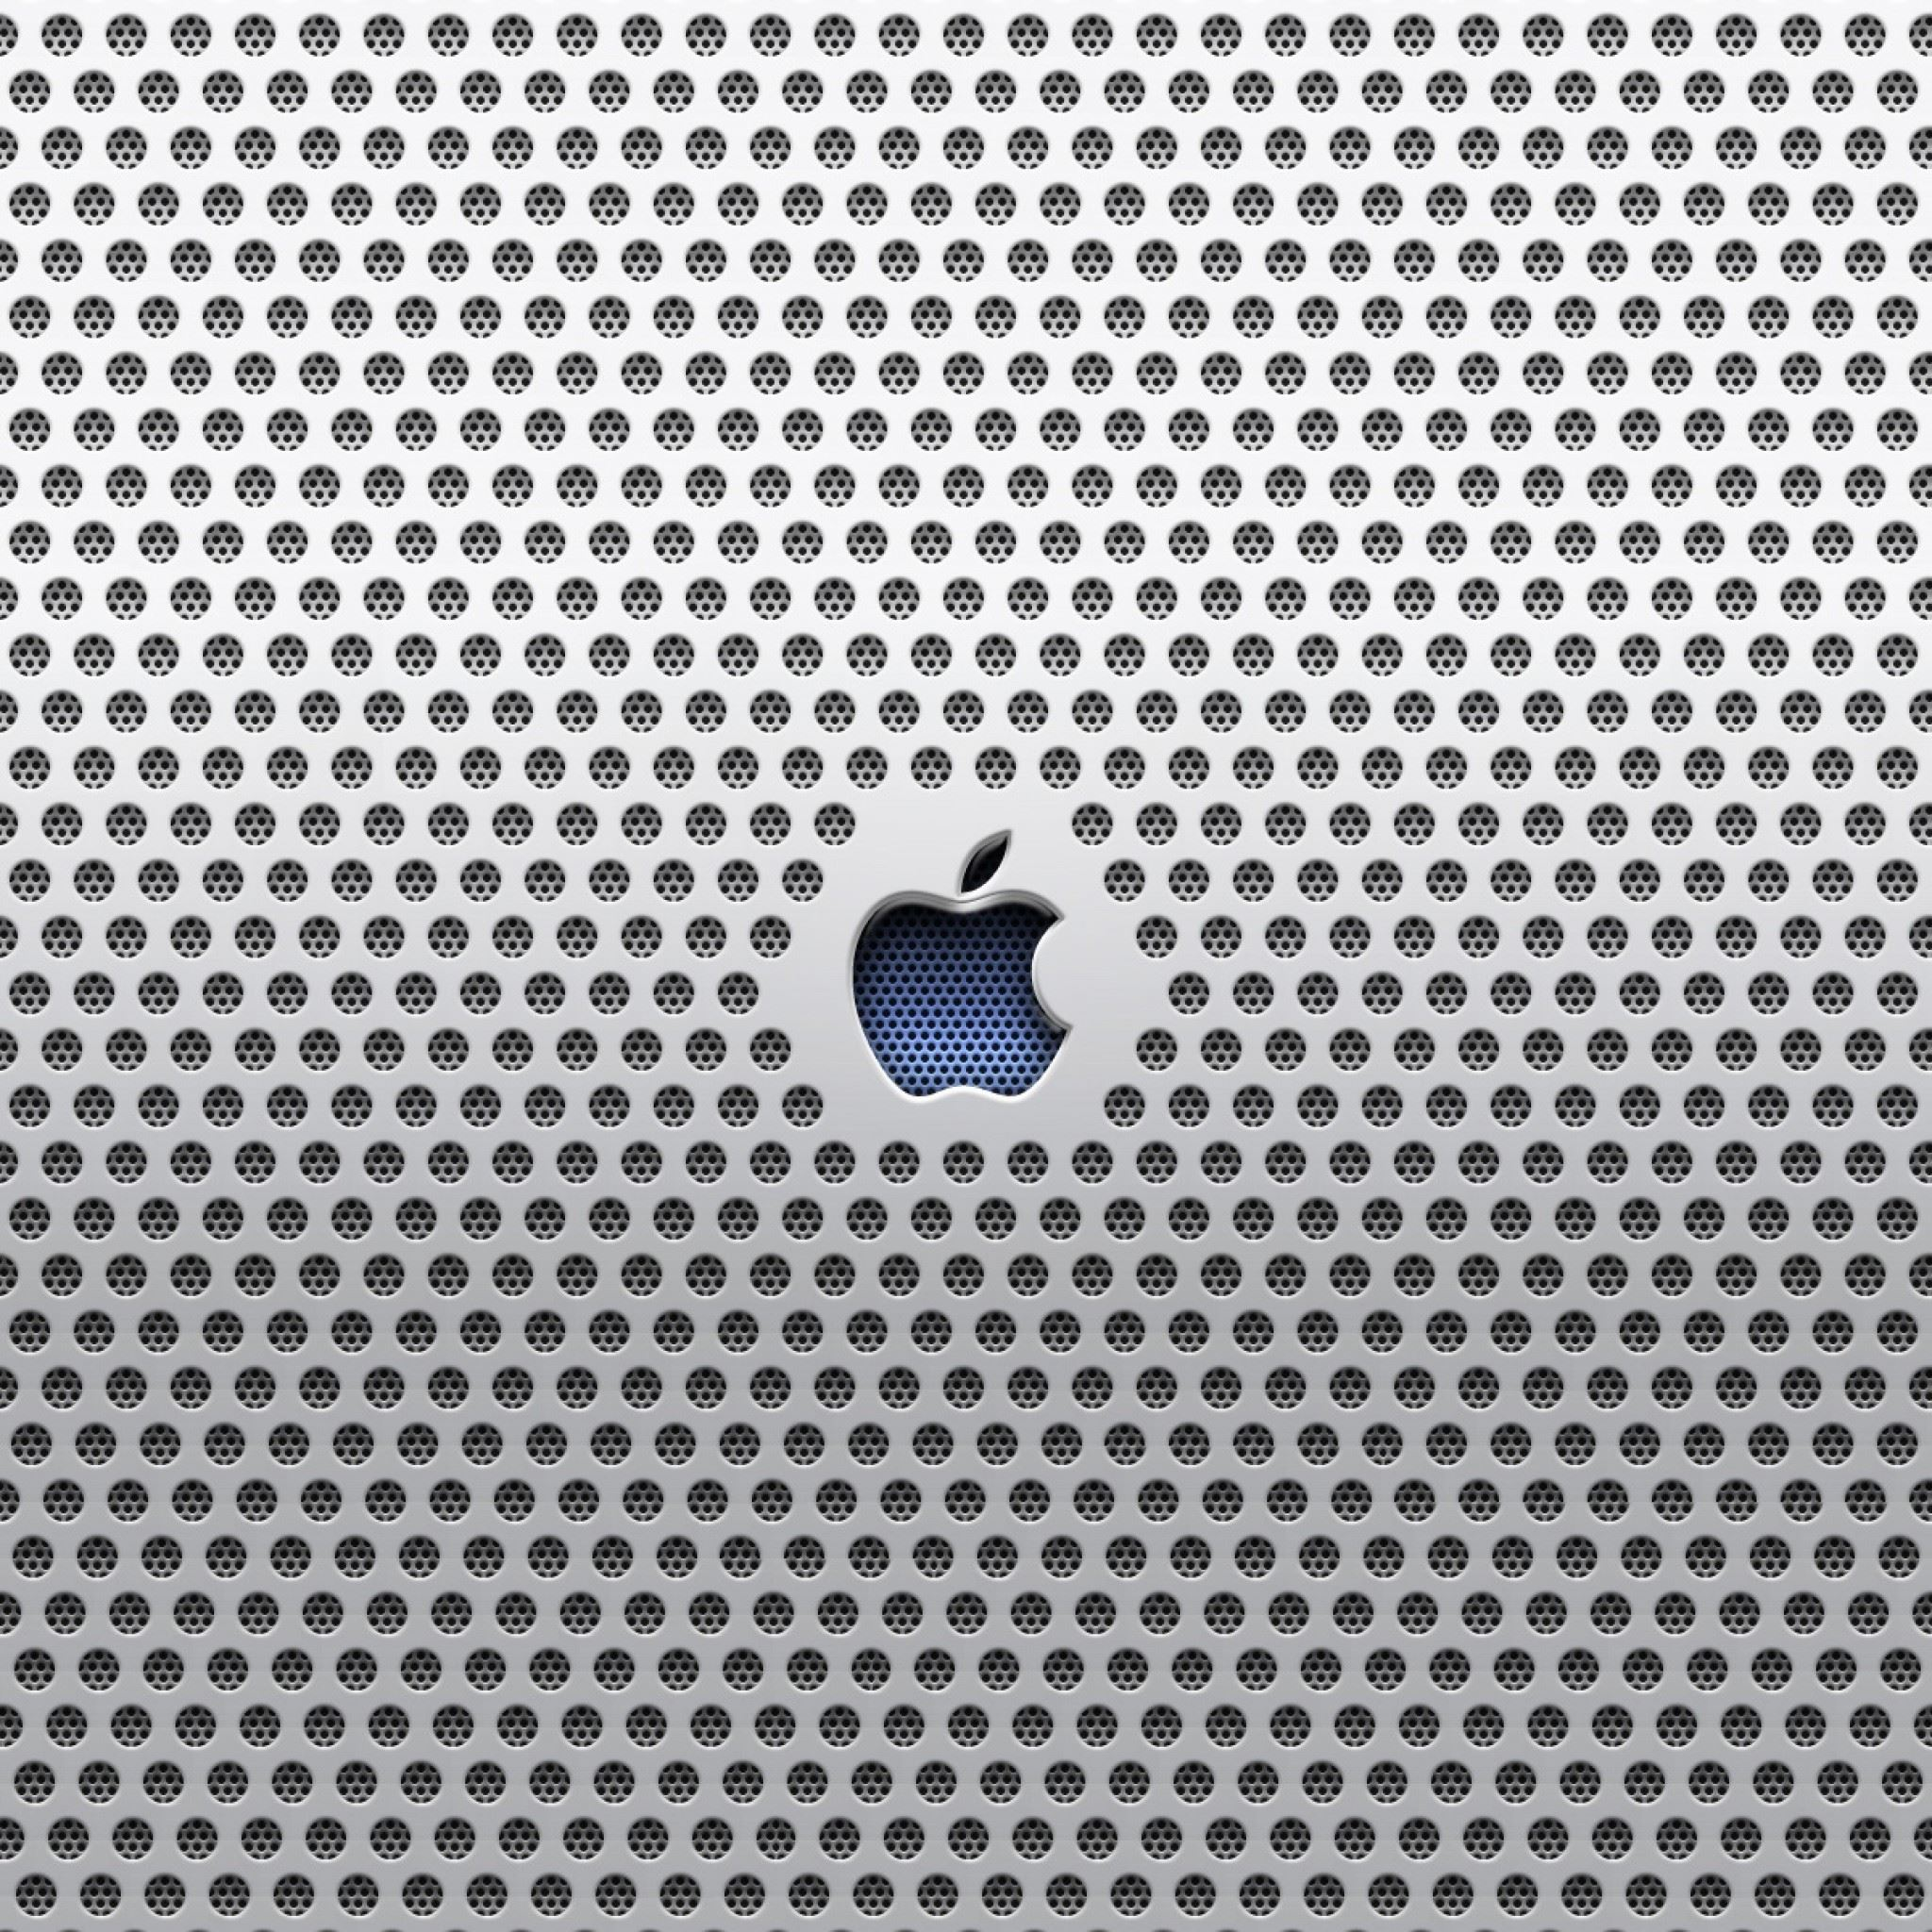 Old Iphone Wallpapers: Apple Metal Hd IPad Air Wallpaper Download